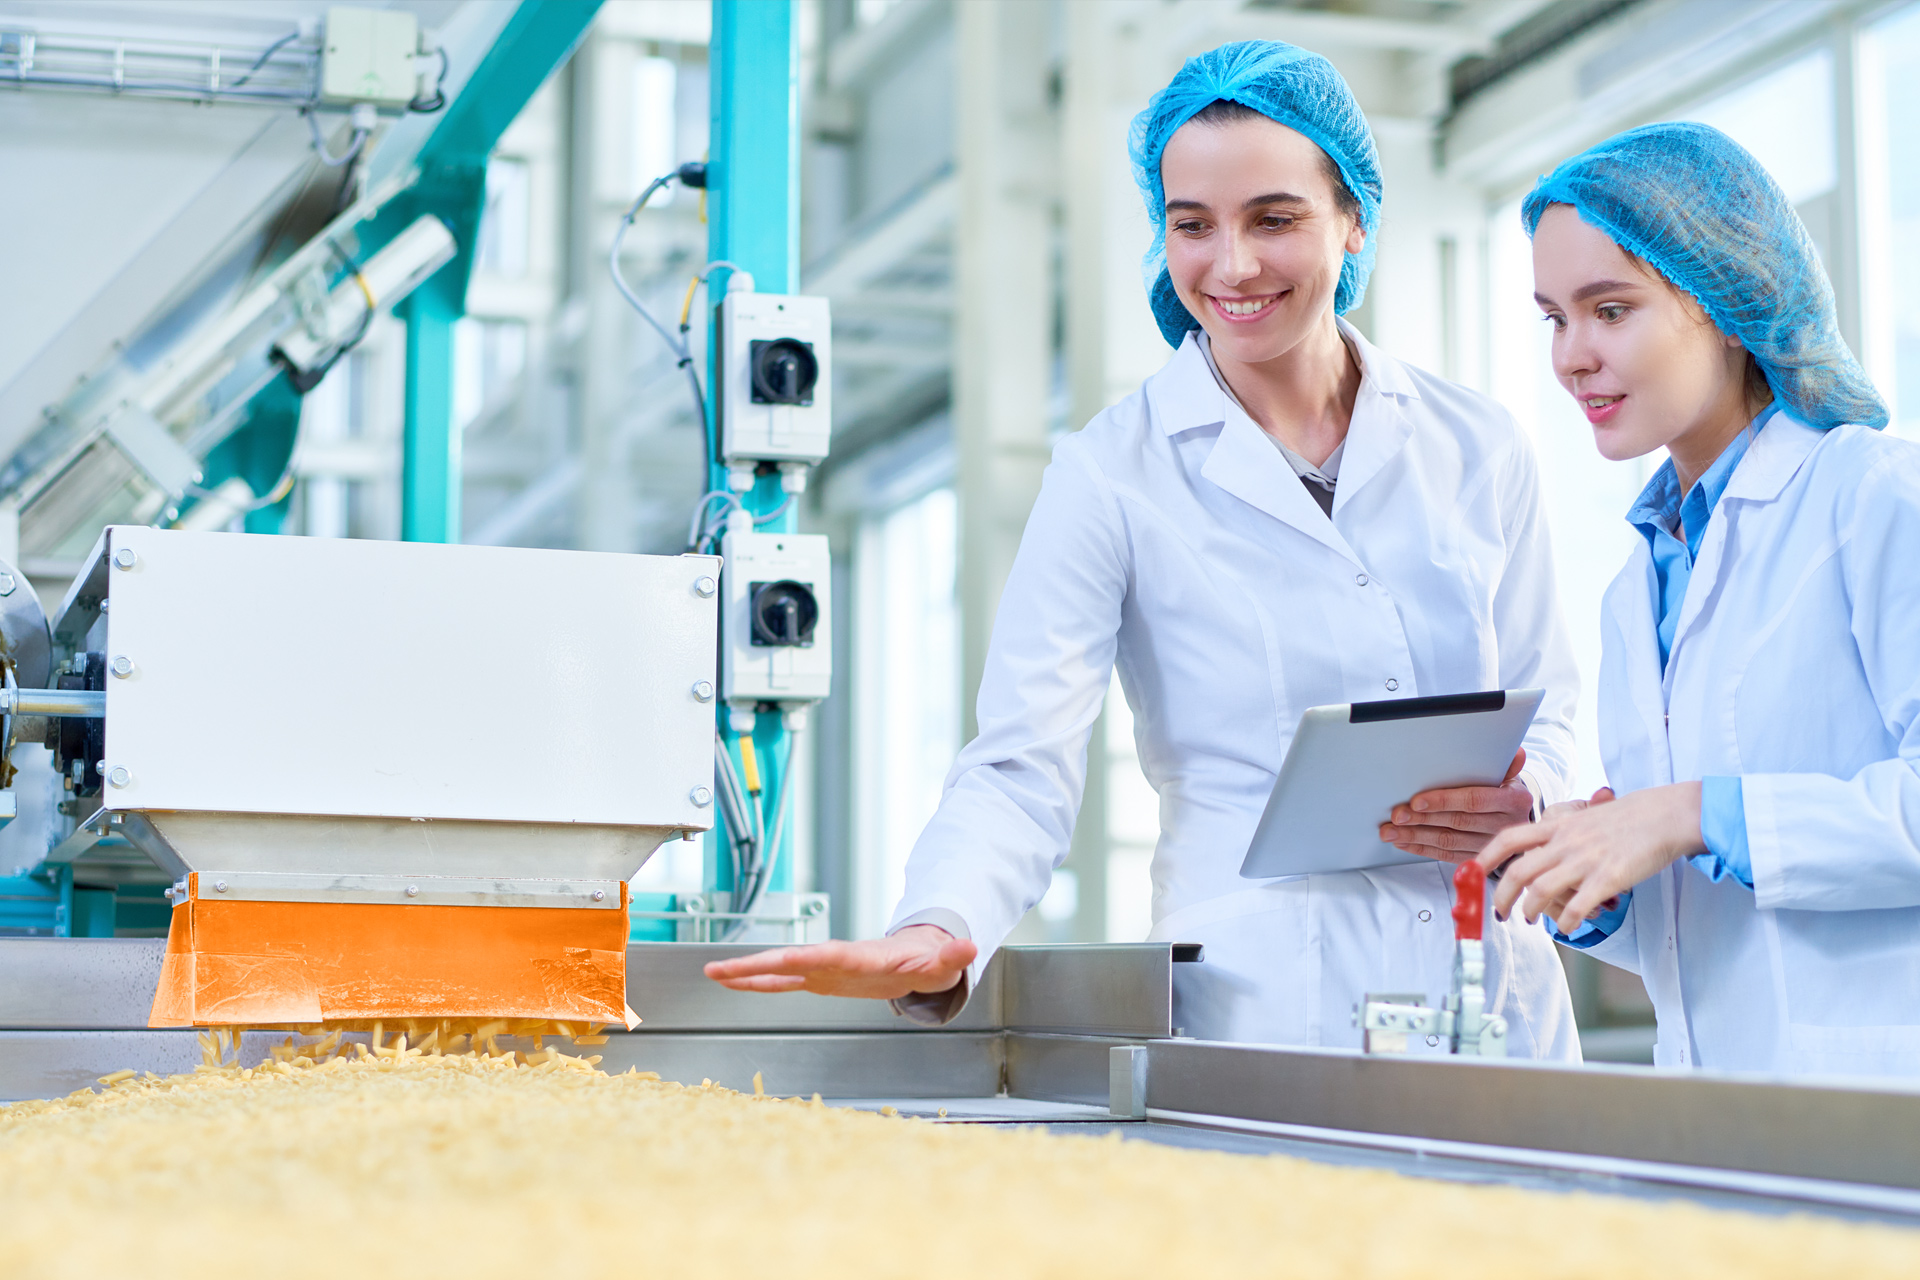 How to improve visibility in manufacturing